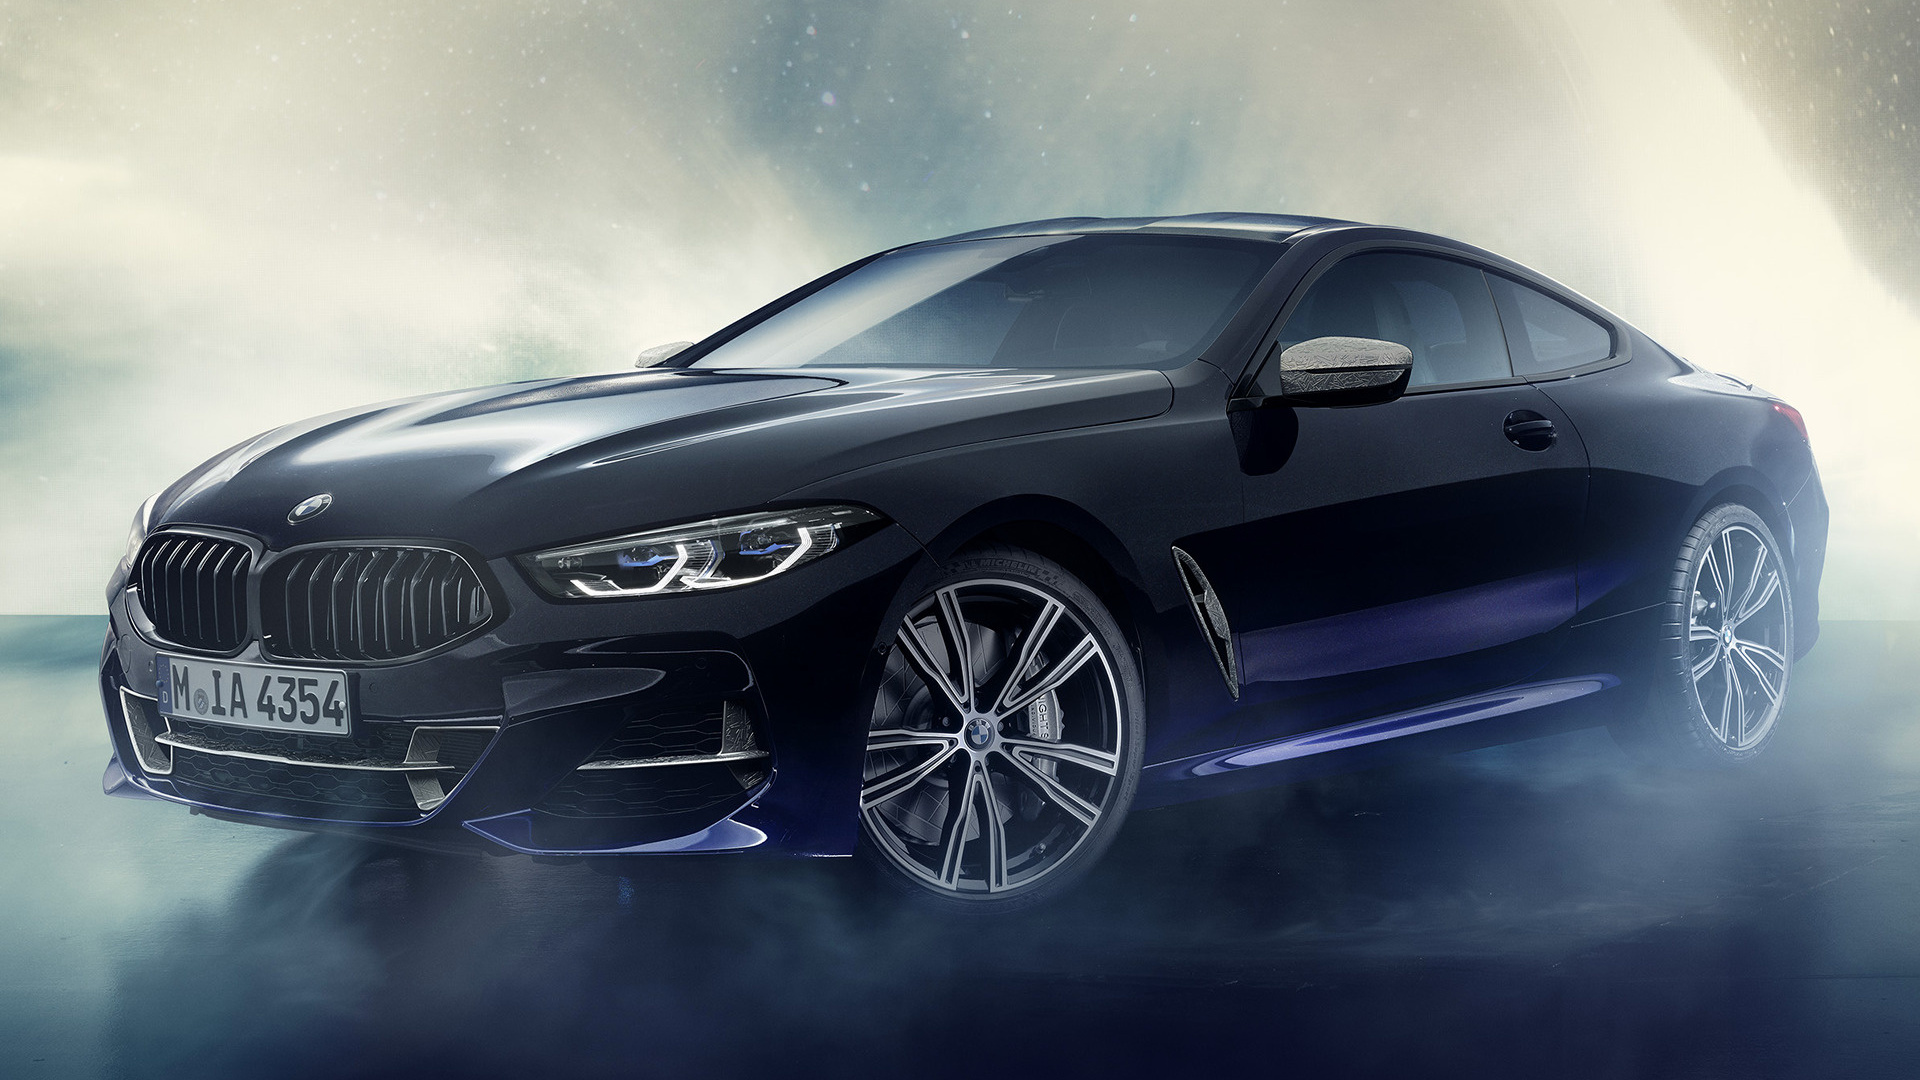 2019 Bmw M850i Coupe Night Sky Wallpapers And Hd Images